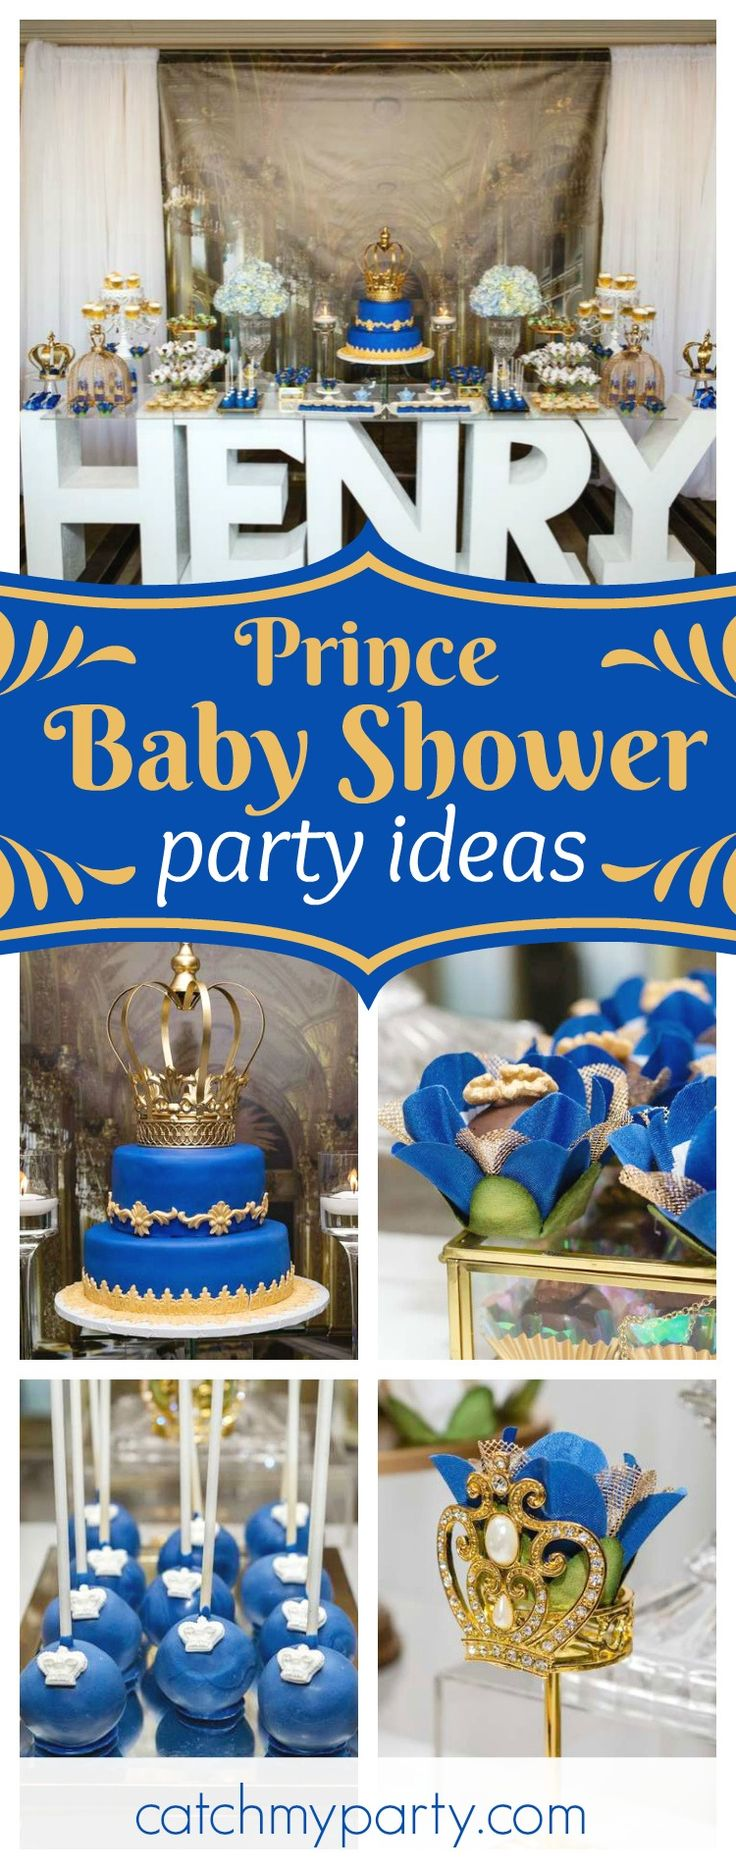 Winnie the pooh baby shower centerpiece ideas 48pc baby shower winnie - Check Out This Regal Baby Shower Fit For A Prince The Dessert Table Is Amazing